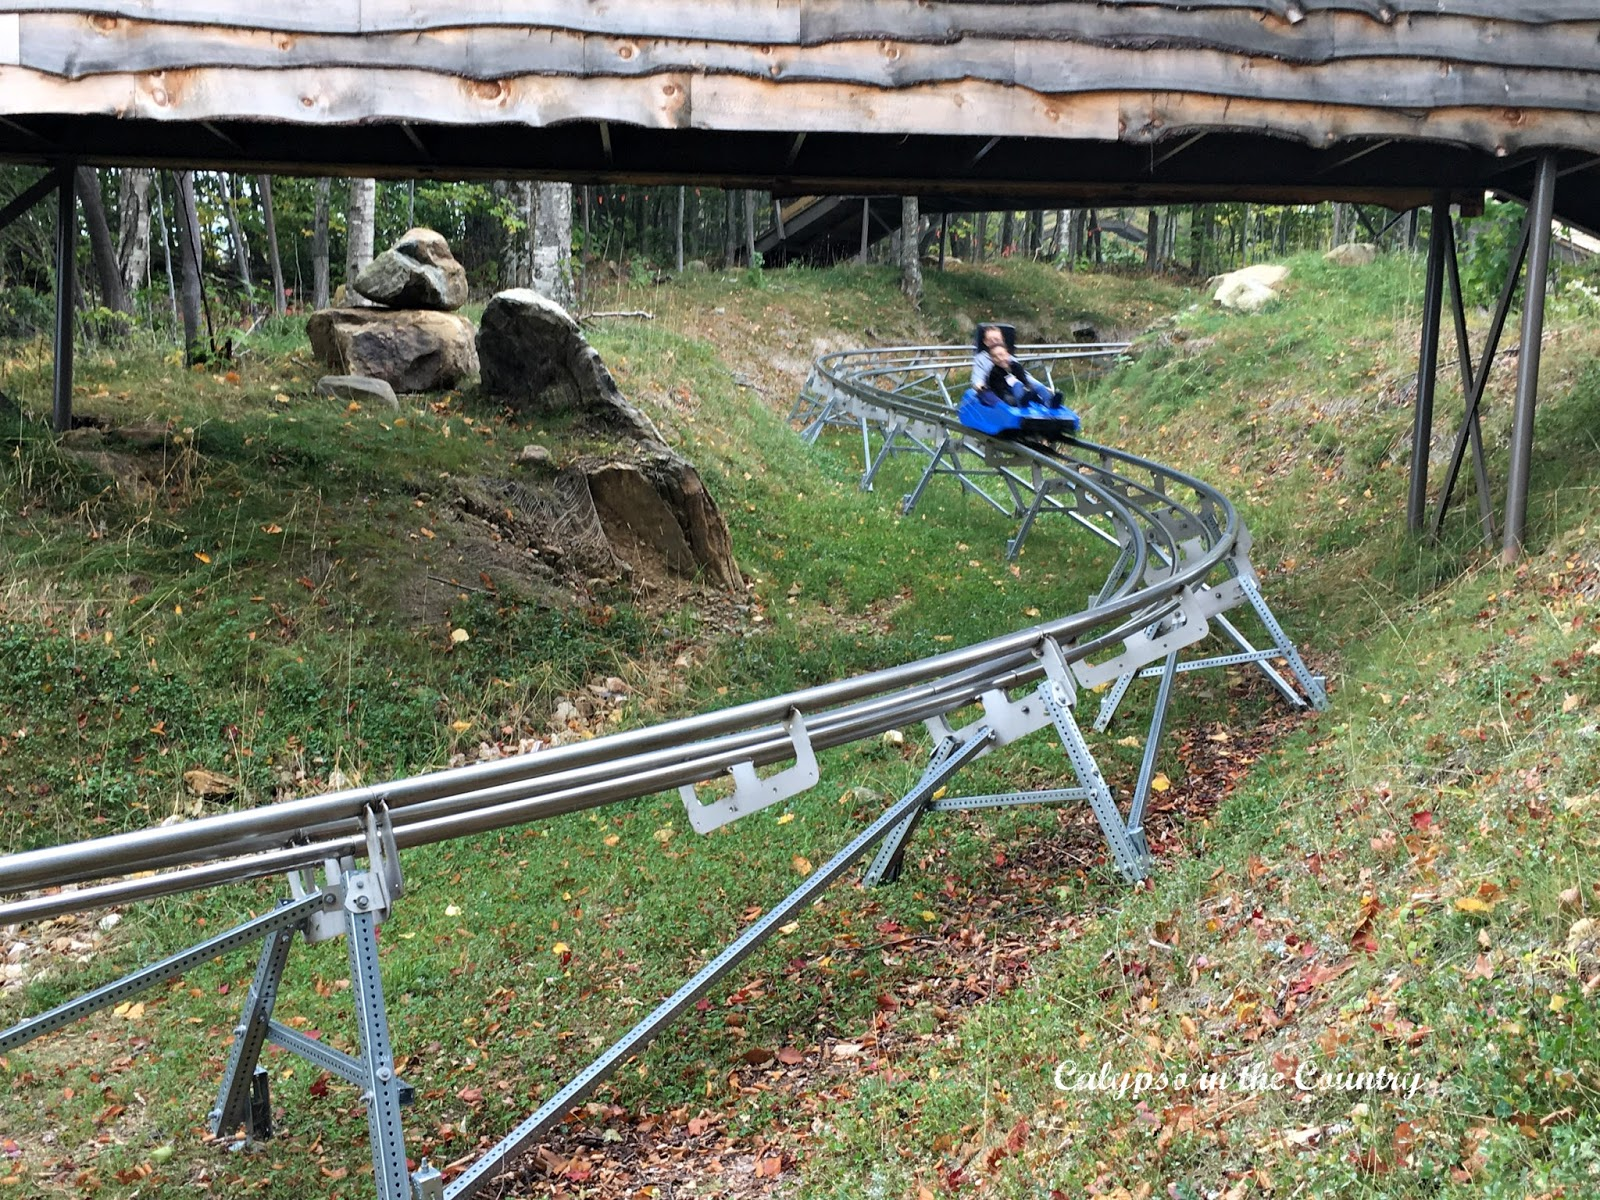 Beast Rollercoaster in Killingon Vermont